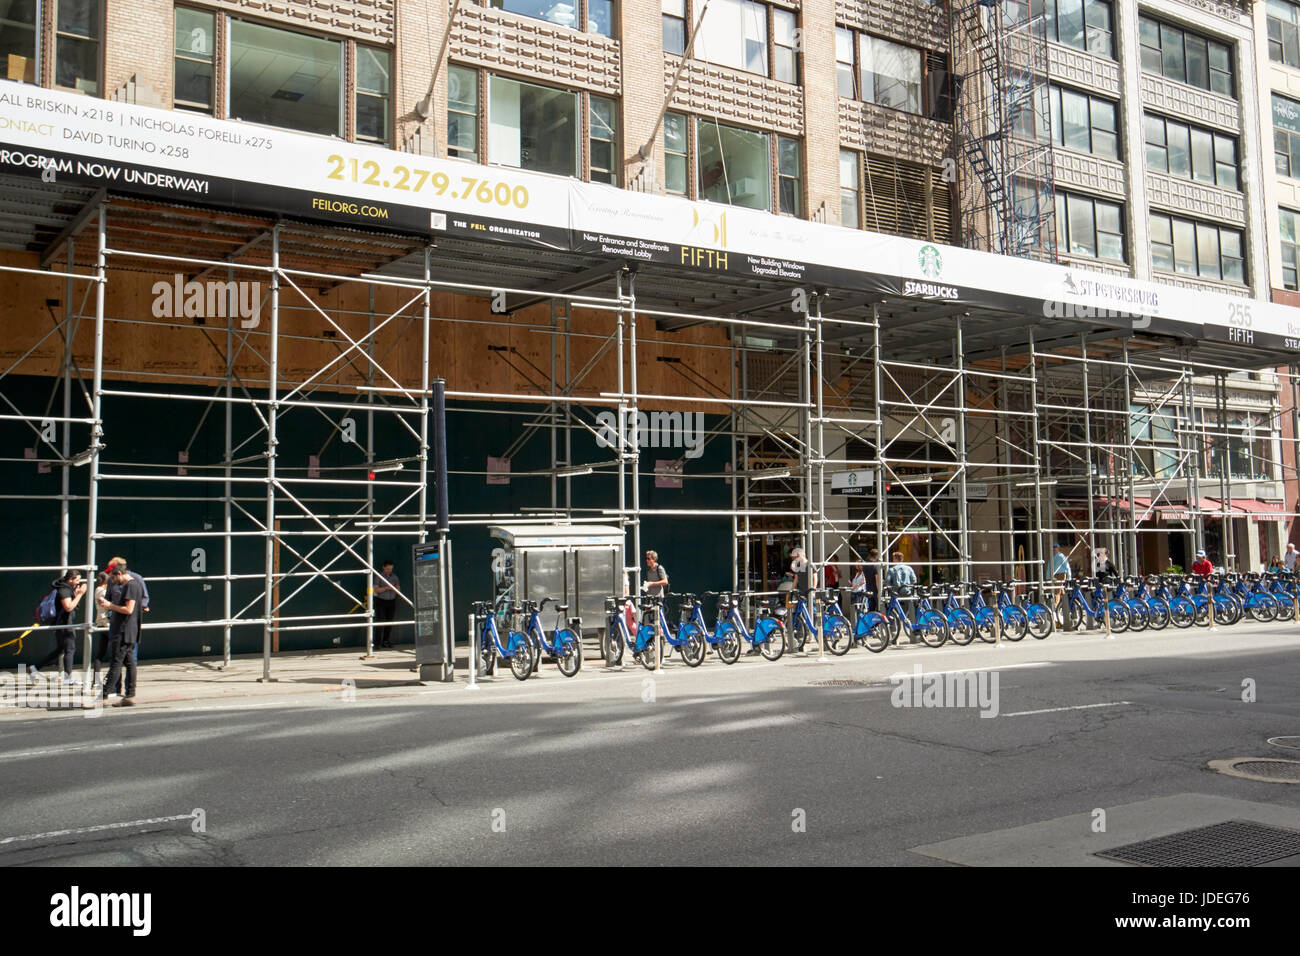 scaffolding over sidewalk and cycle hire station New York City USA - Stock Image